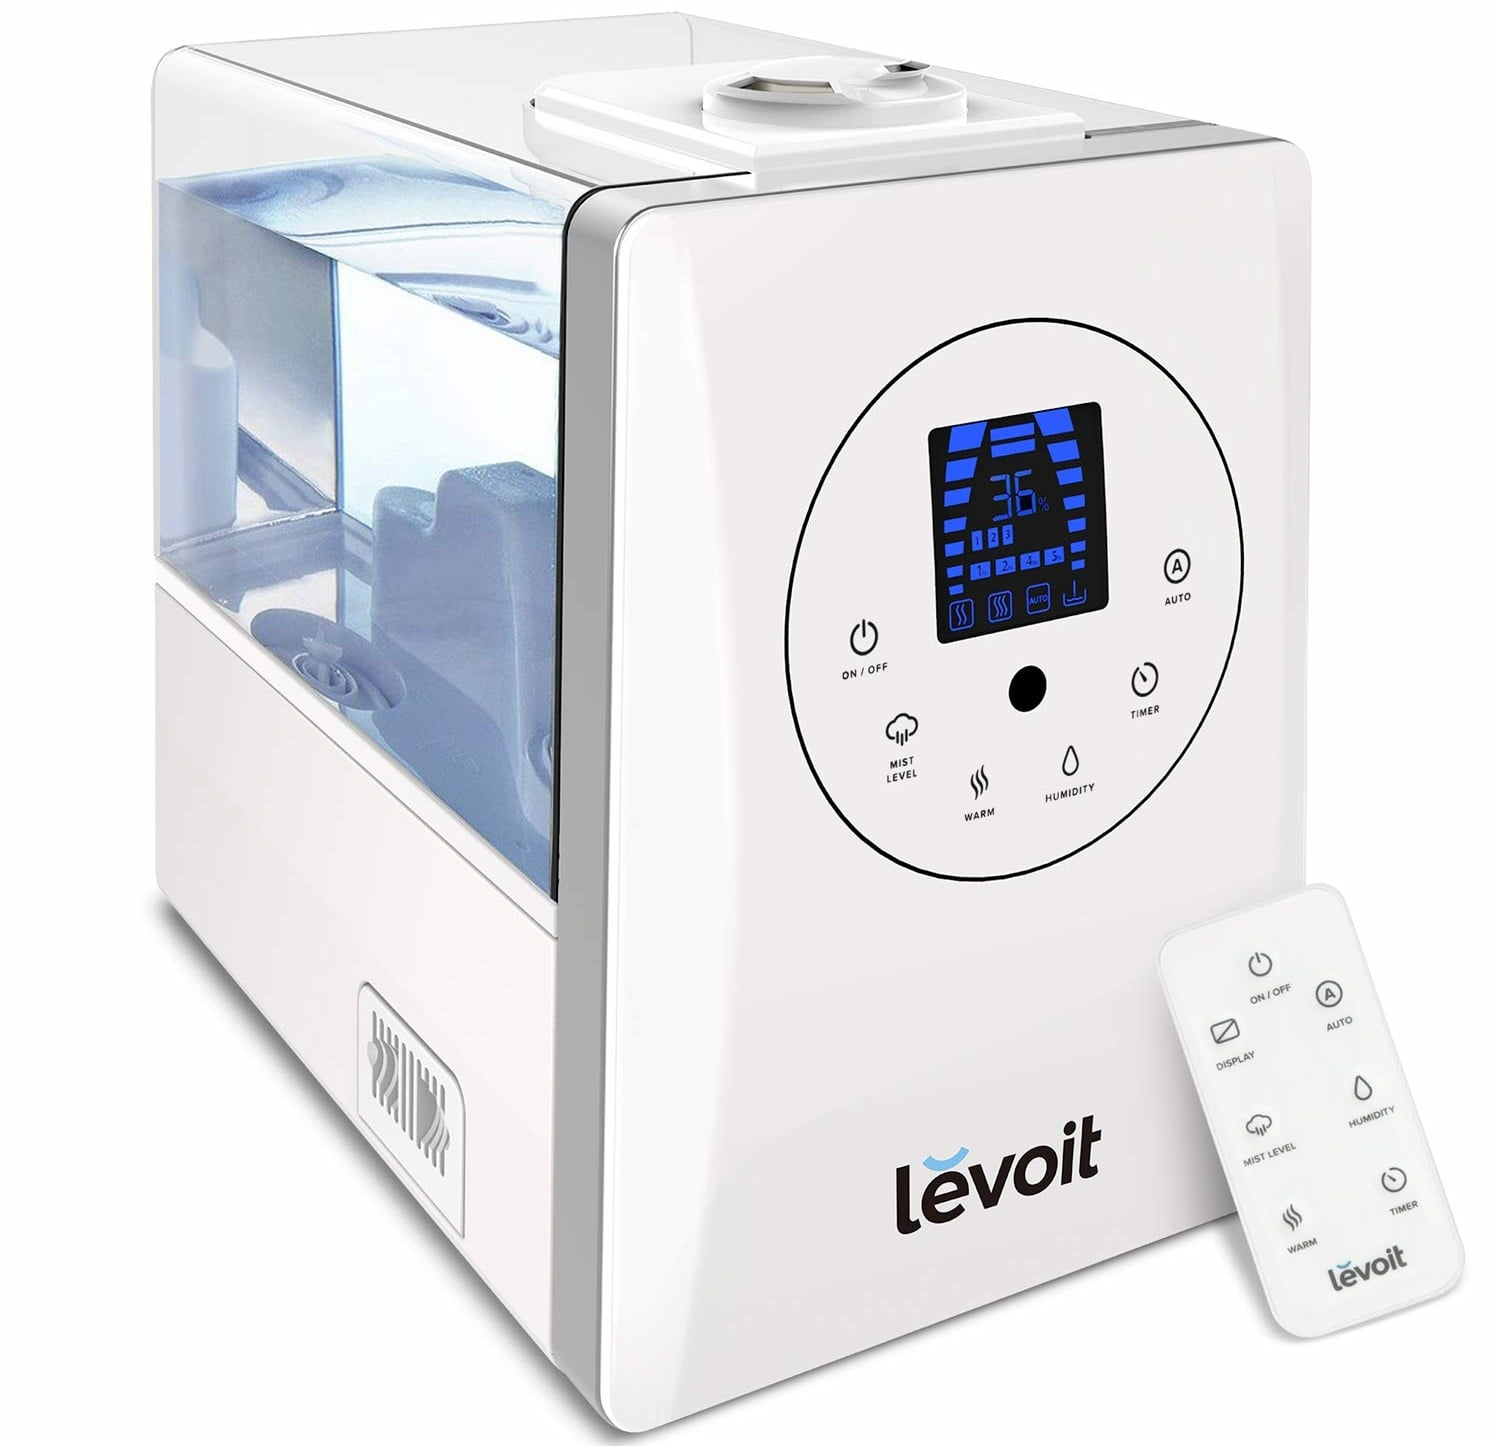 Levoit Cool and Warm Mist Ultrasonic Air Humidifier